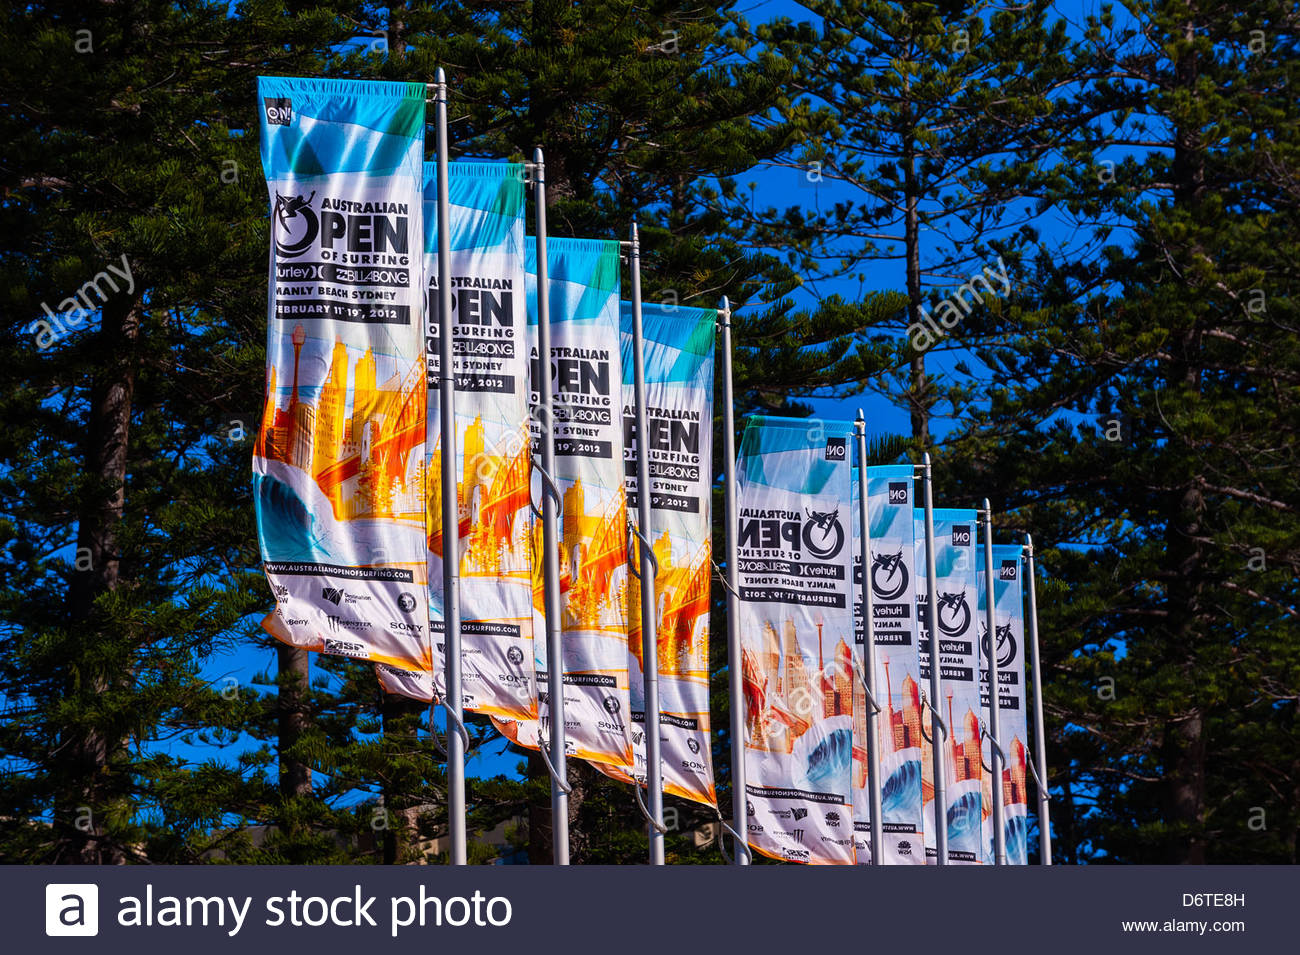 Australian Open of Surfing banners, Manly Beach, Sydney, New South Wales, Australia - Stock Image